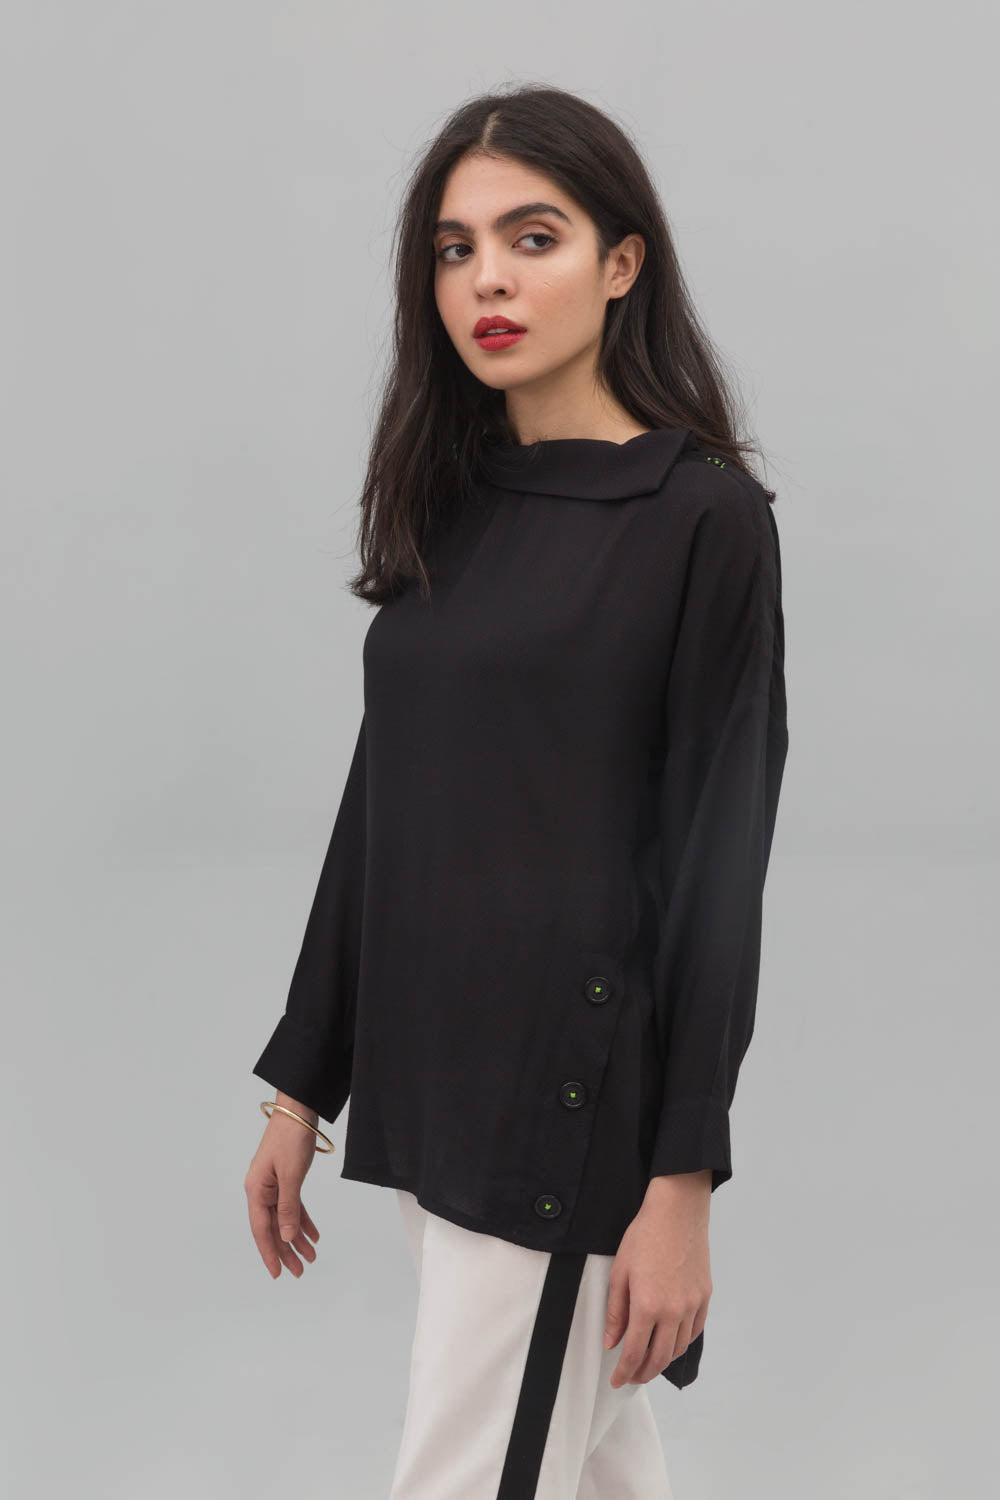 Black Cowl Neck Fusion Shirt In Blended Linen